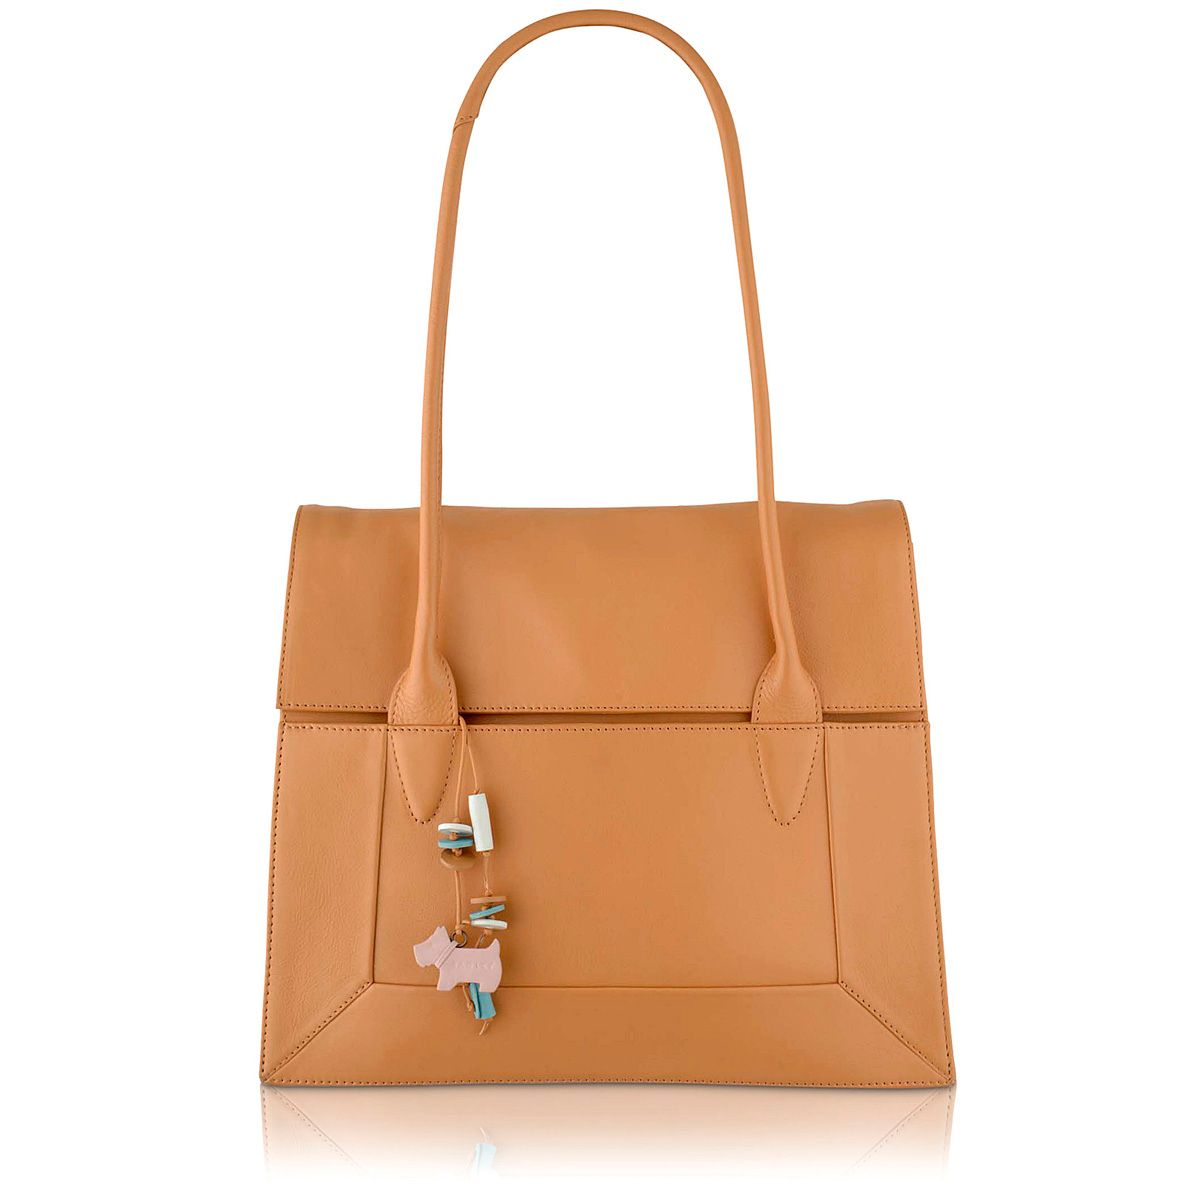 Tan large flapover tote bag